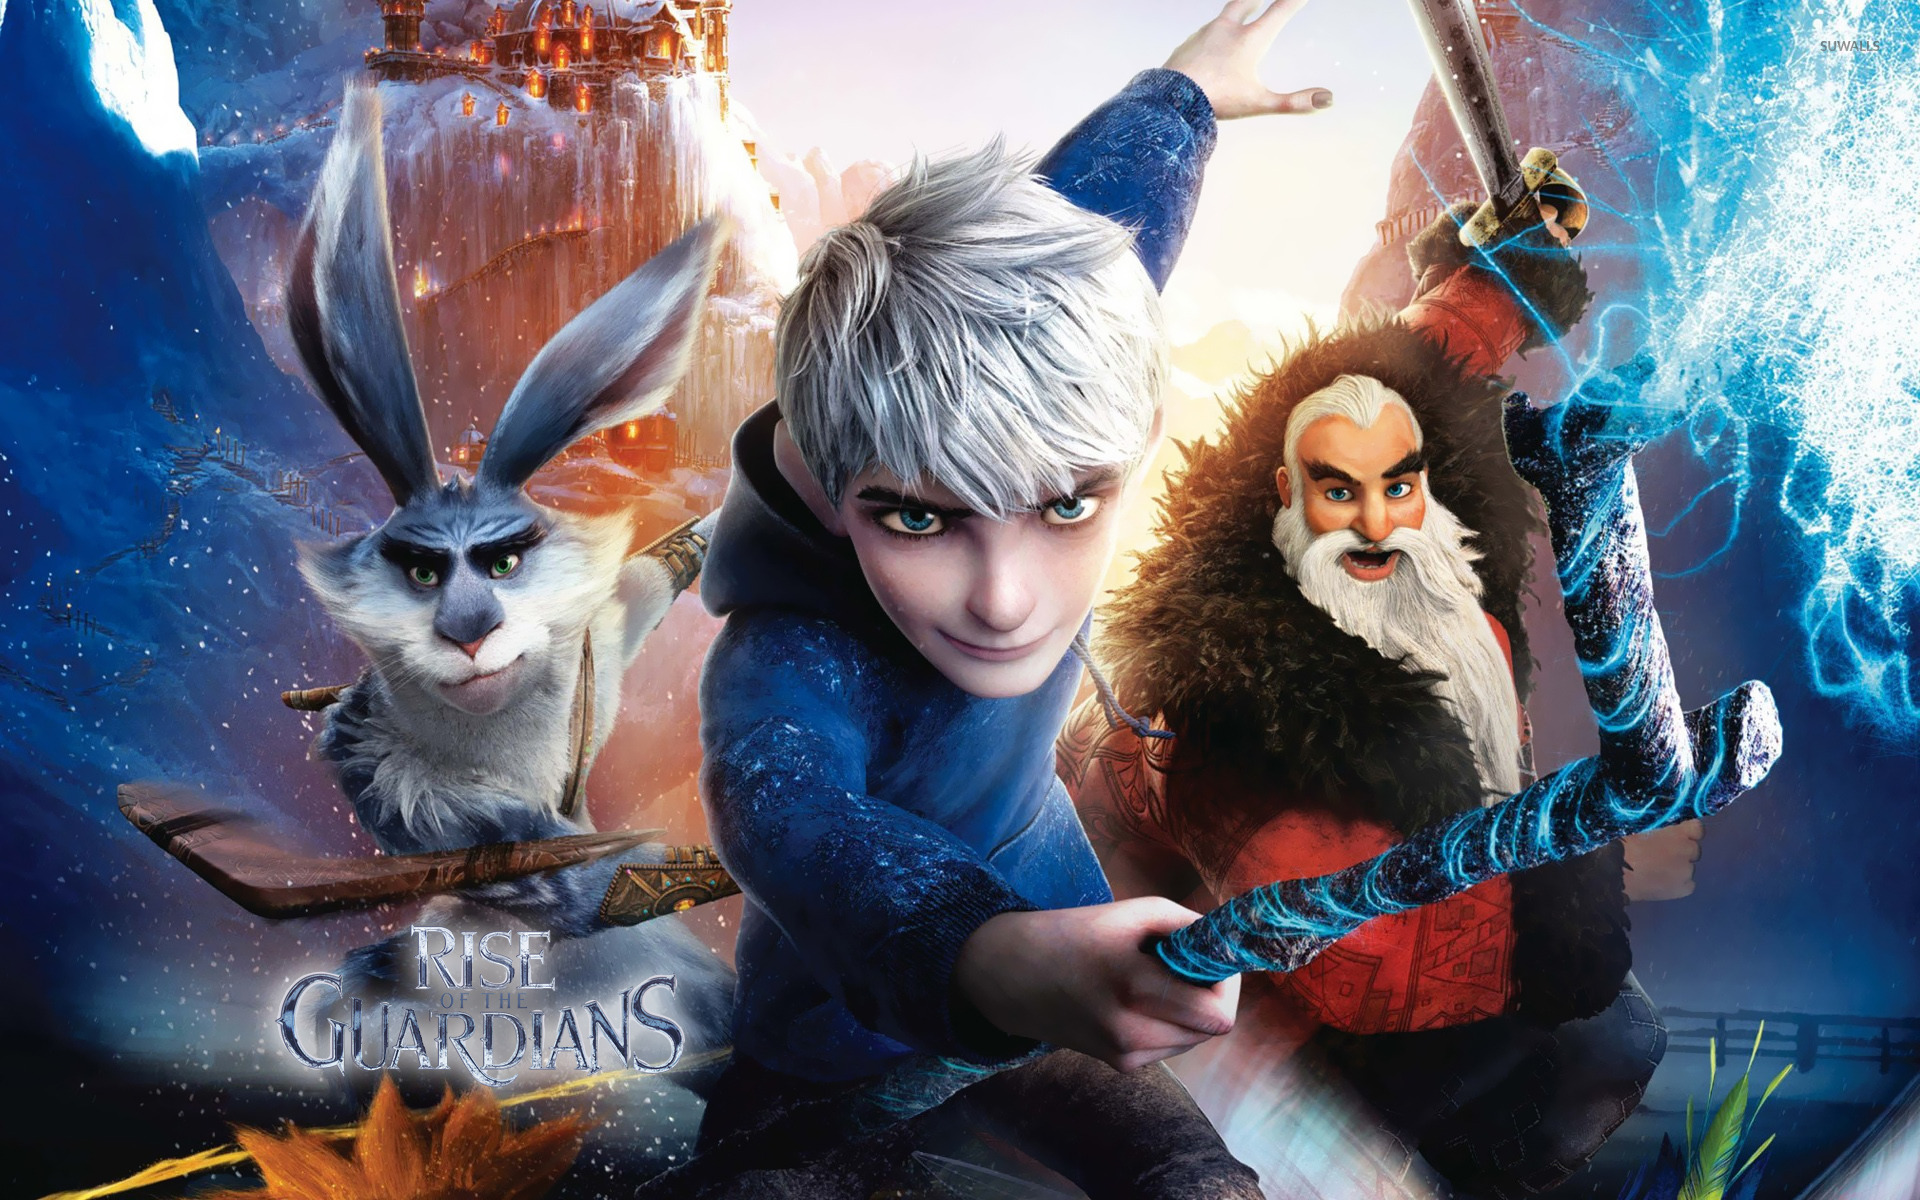 1920x1200 - Rise Of The Guardians Wallpapers 4